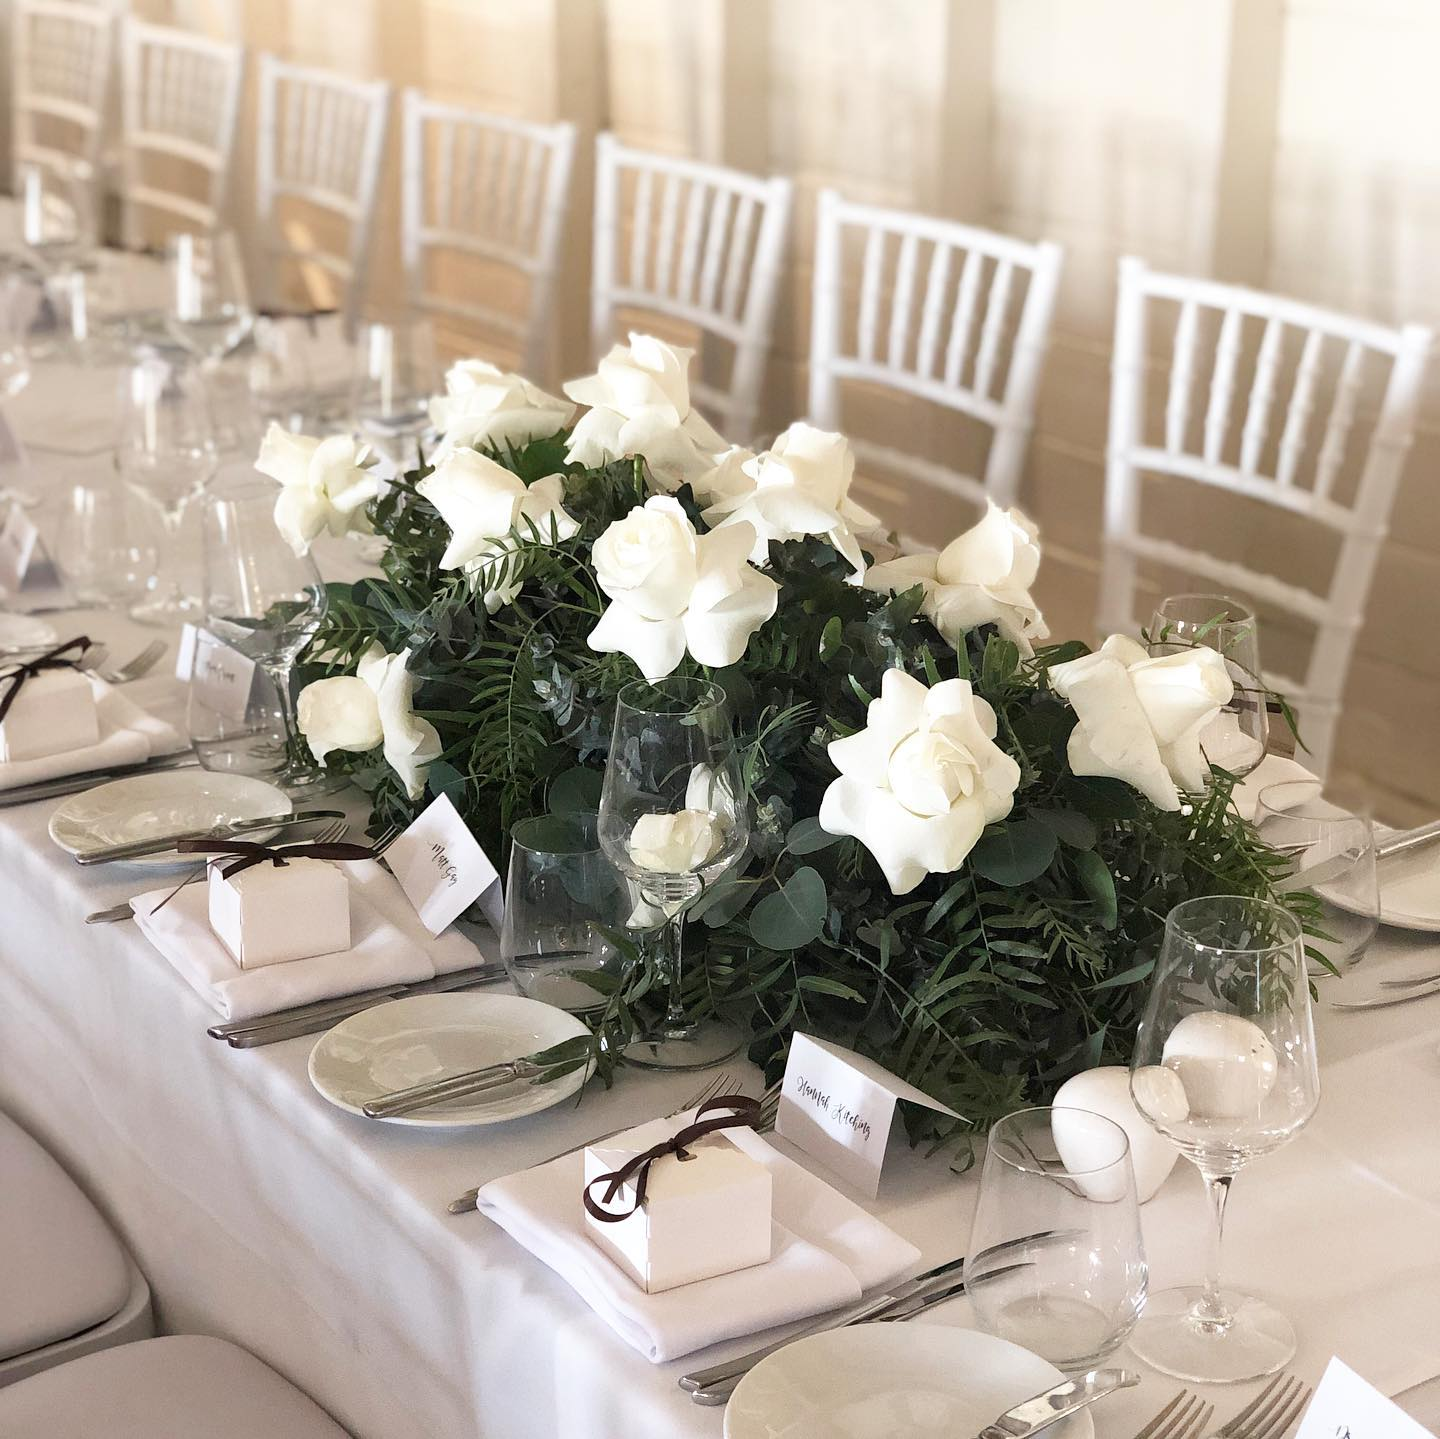 White and green table flowers for wedding.jpg